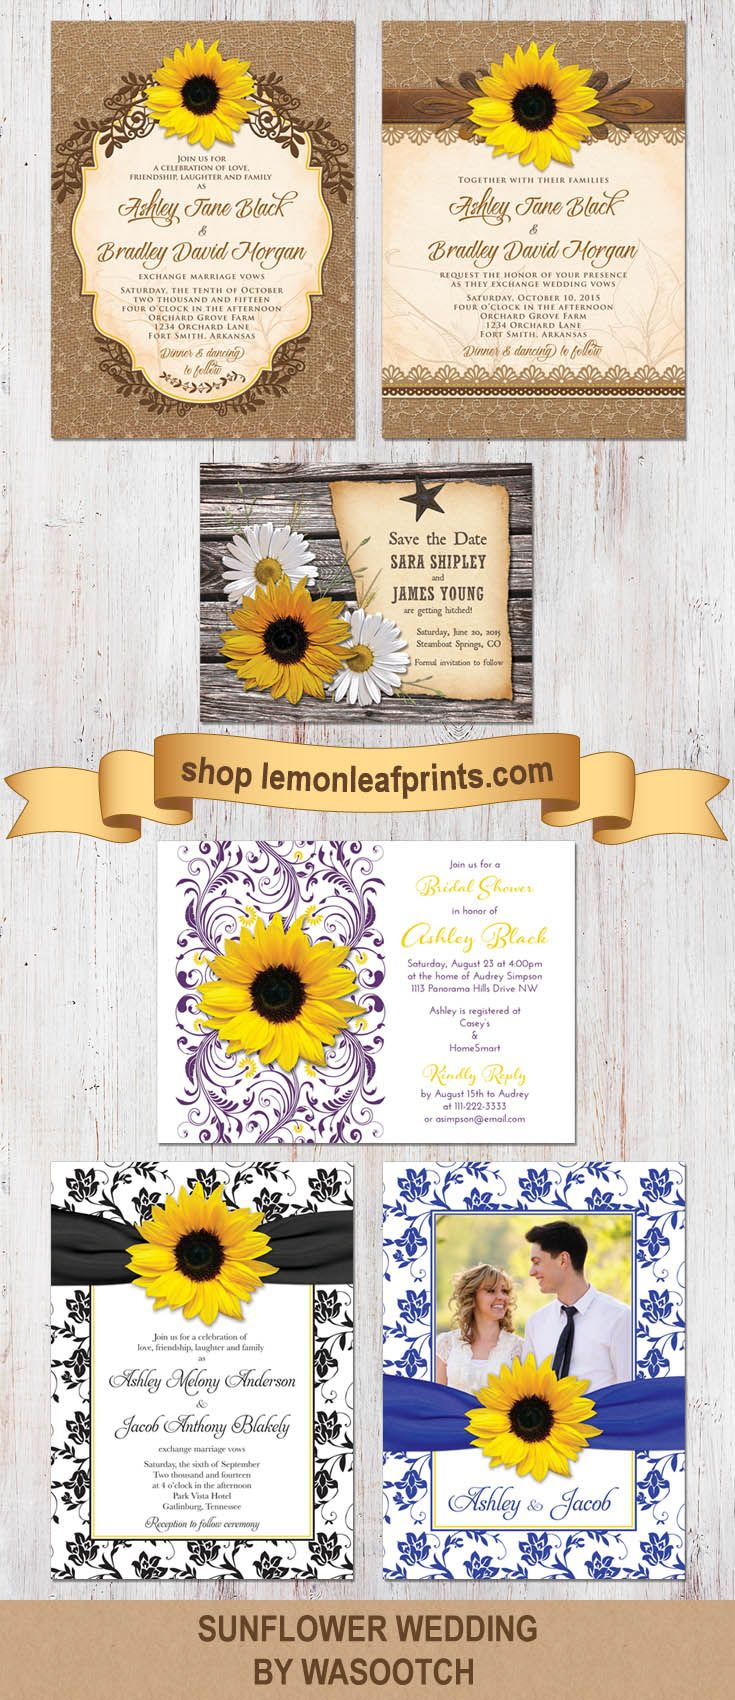 A Selection Of Wasootch S Sunflower Wedding Invitations Save The